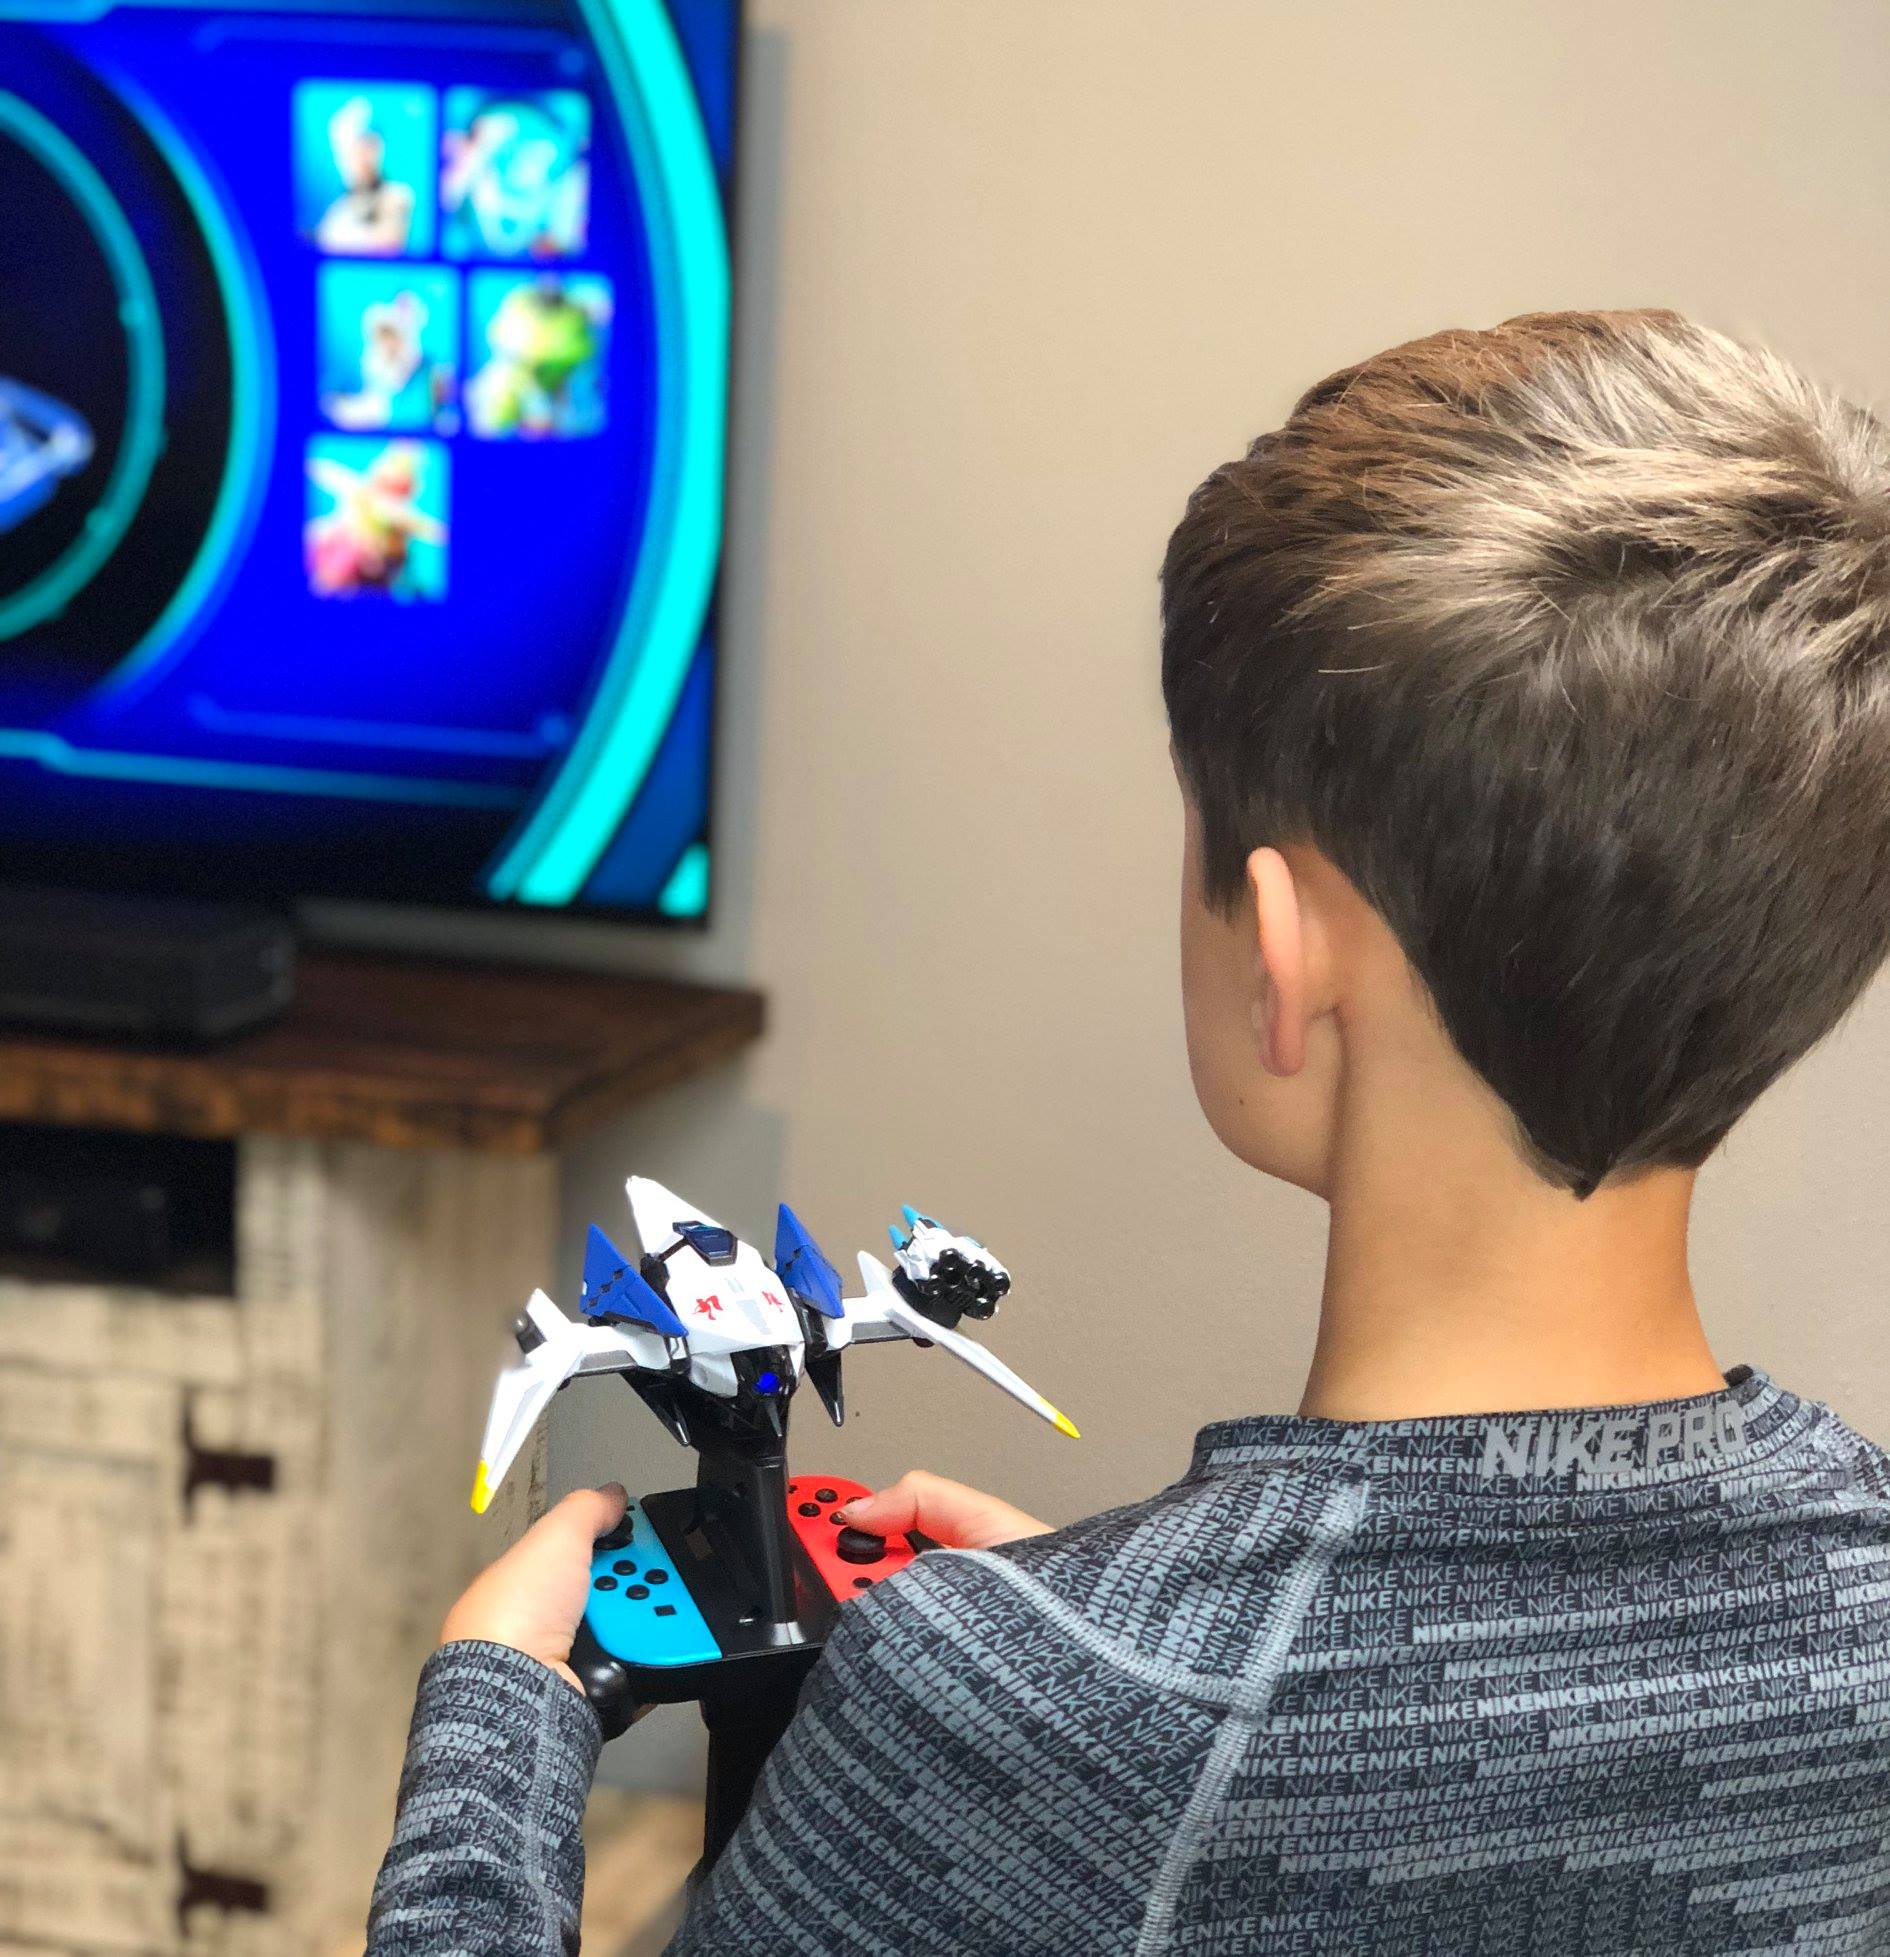 Noah playing Starlink